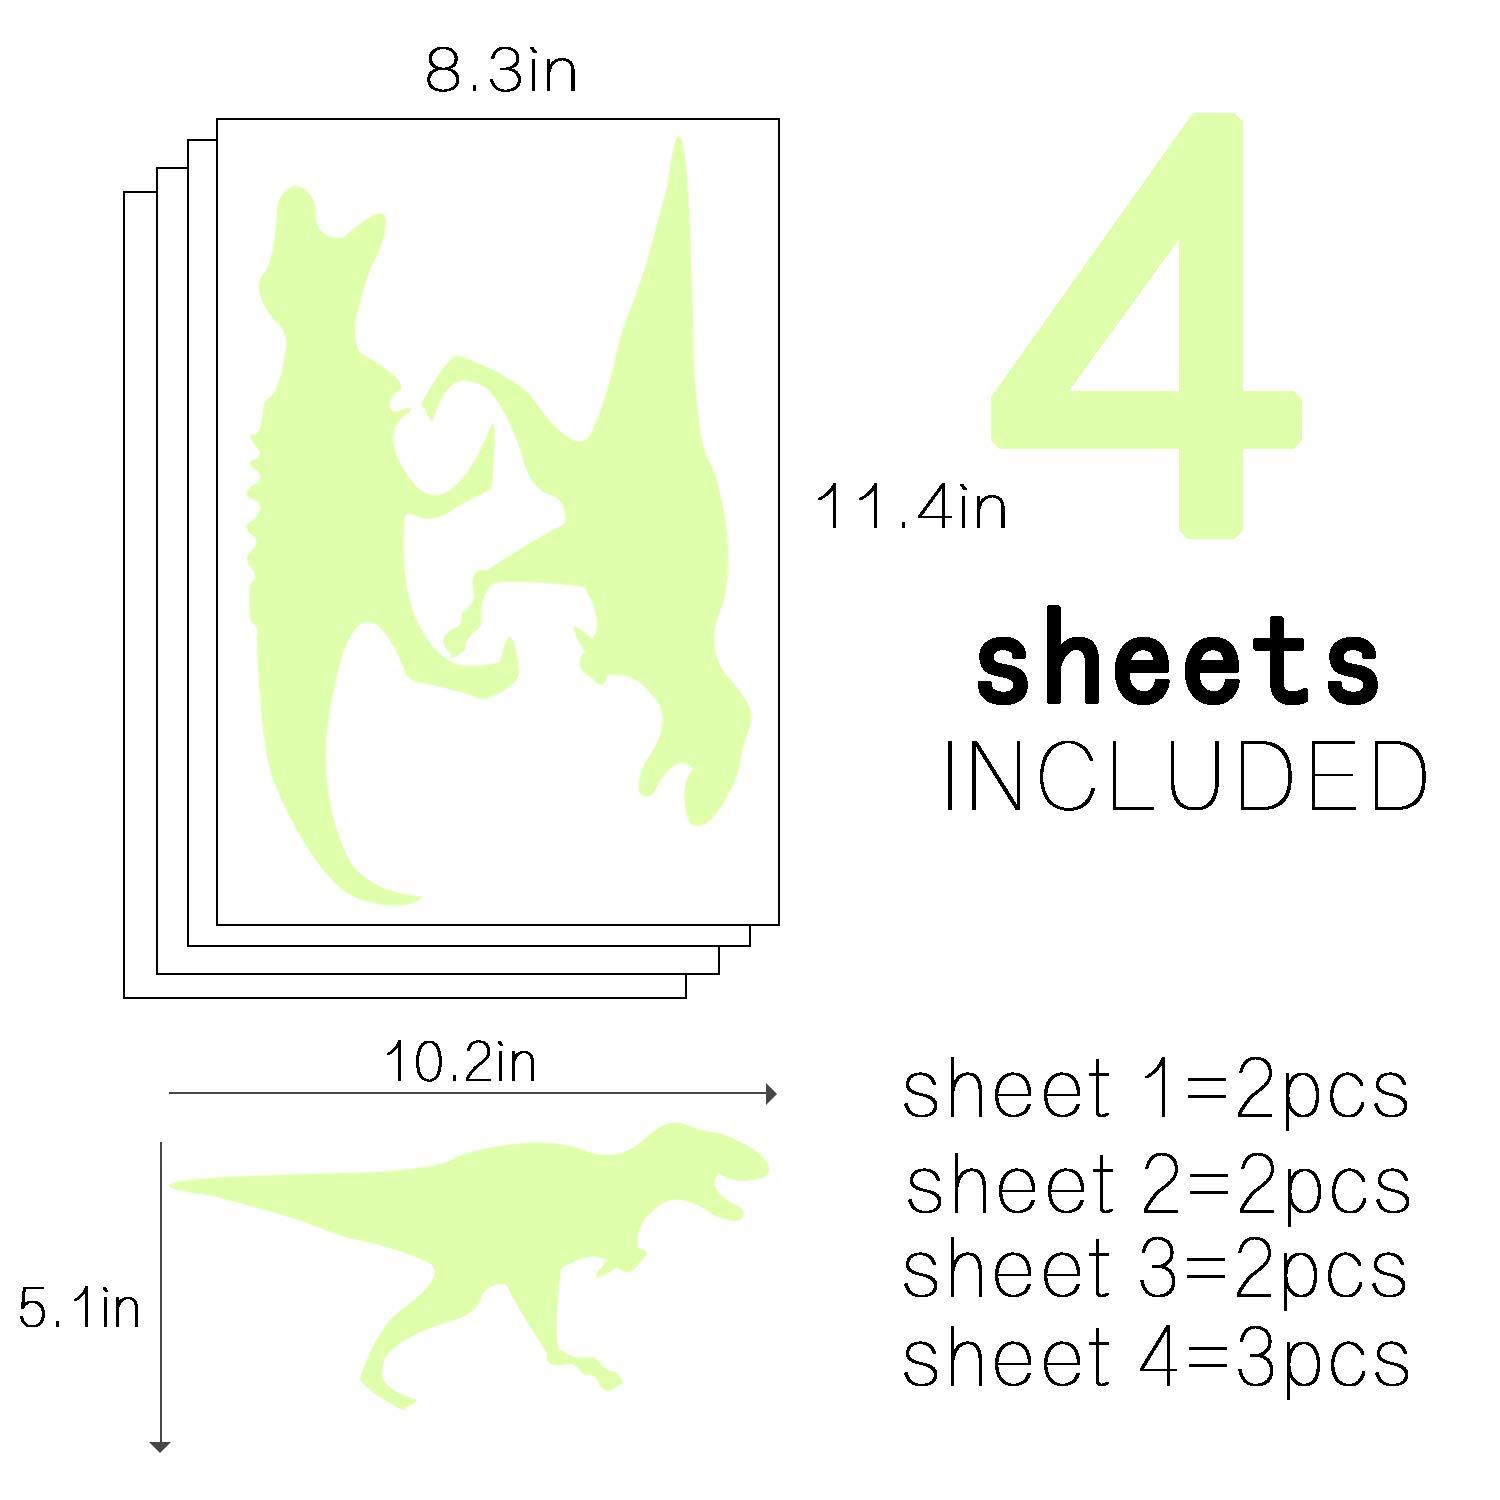 Glowing Cute Dinosaur Stickers Bright and Realistic Wall Decals for Kids Bedroom Wall Decor Luminous Dinosaurs Stickers for Ceiling Decor 9 Pcs Sunm boutique Glow in the Dark Stars Wall Stickers Dinosaurs